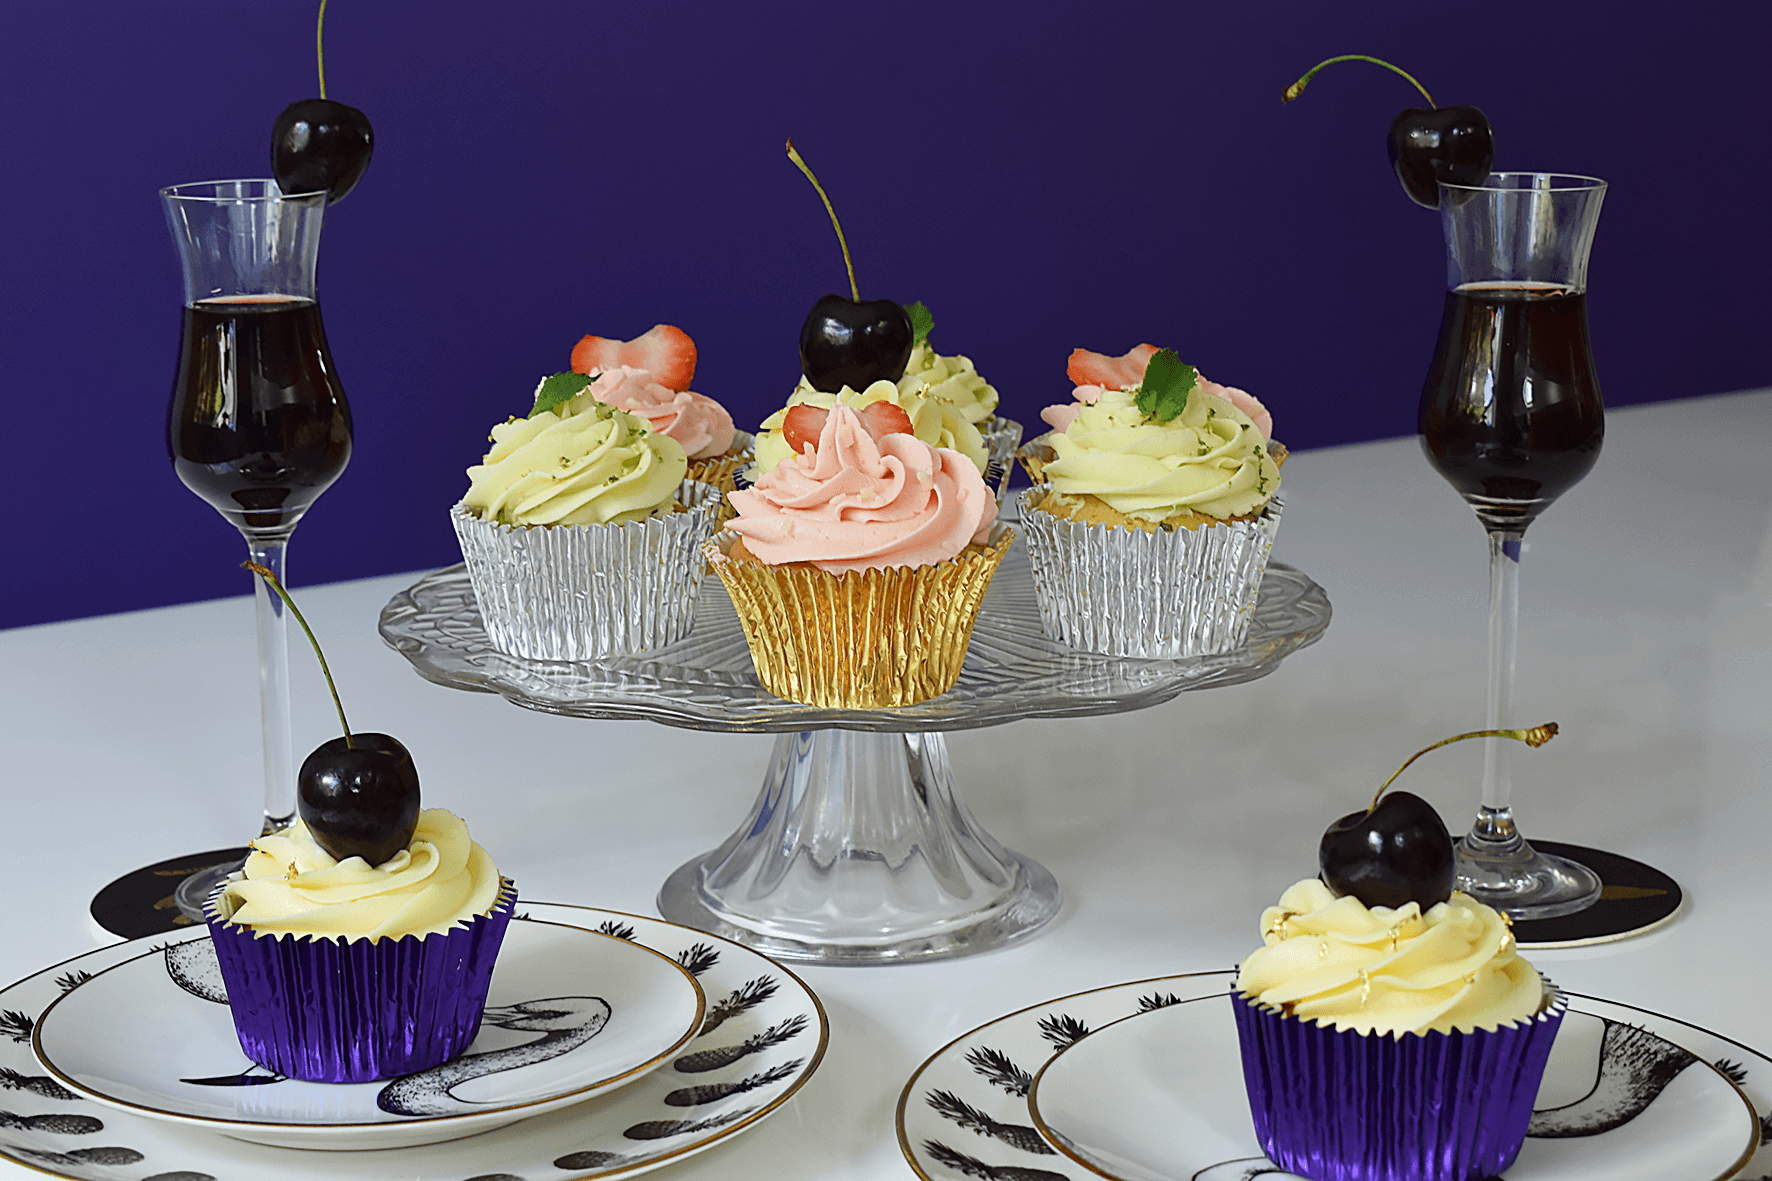 cocktail cupcake recipes and ideas